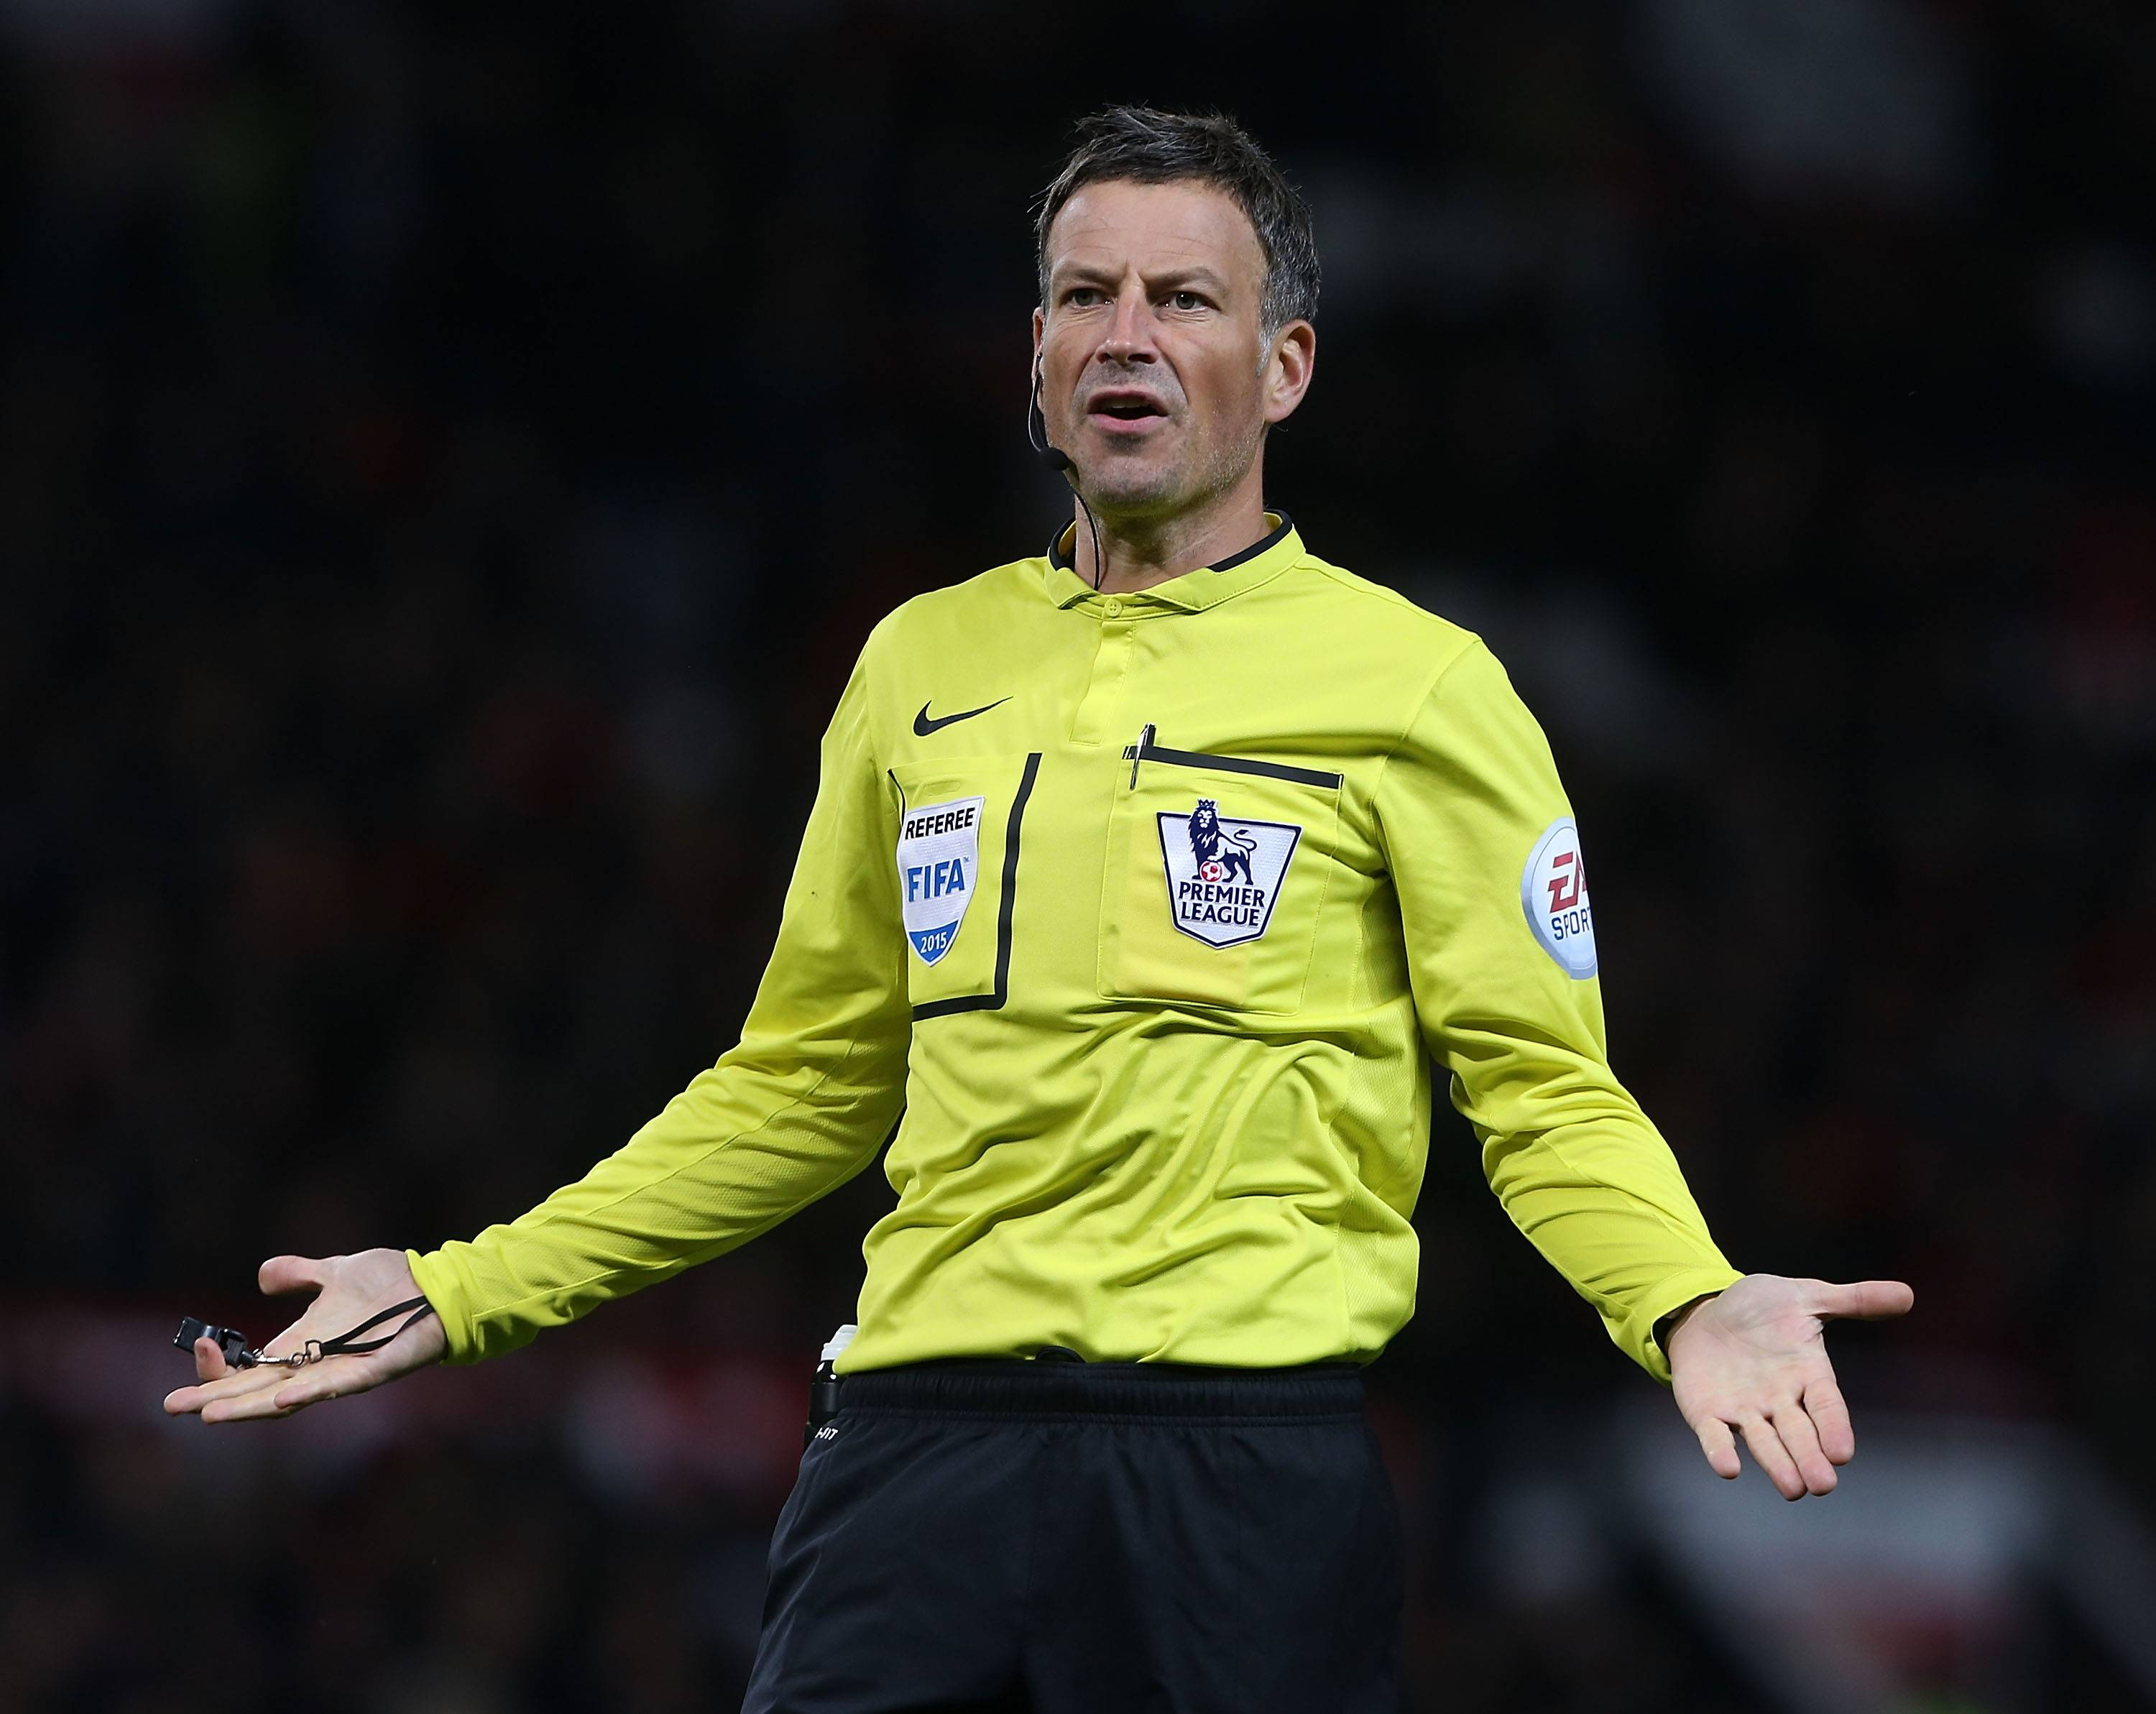 Mark Clattenburg leaves England to take up role in Saudi Arabia